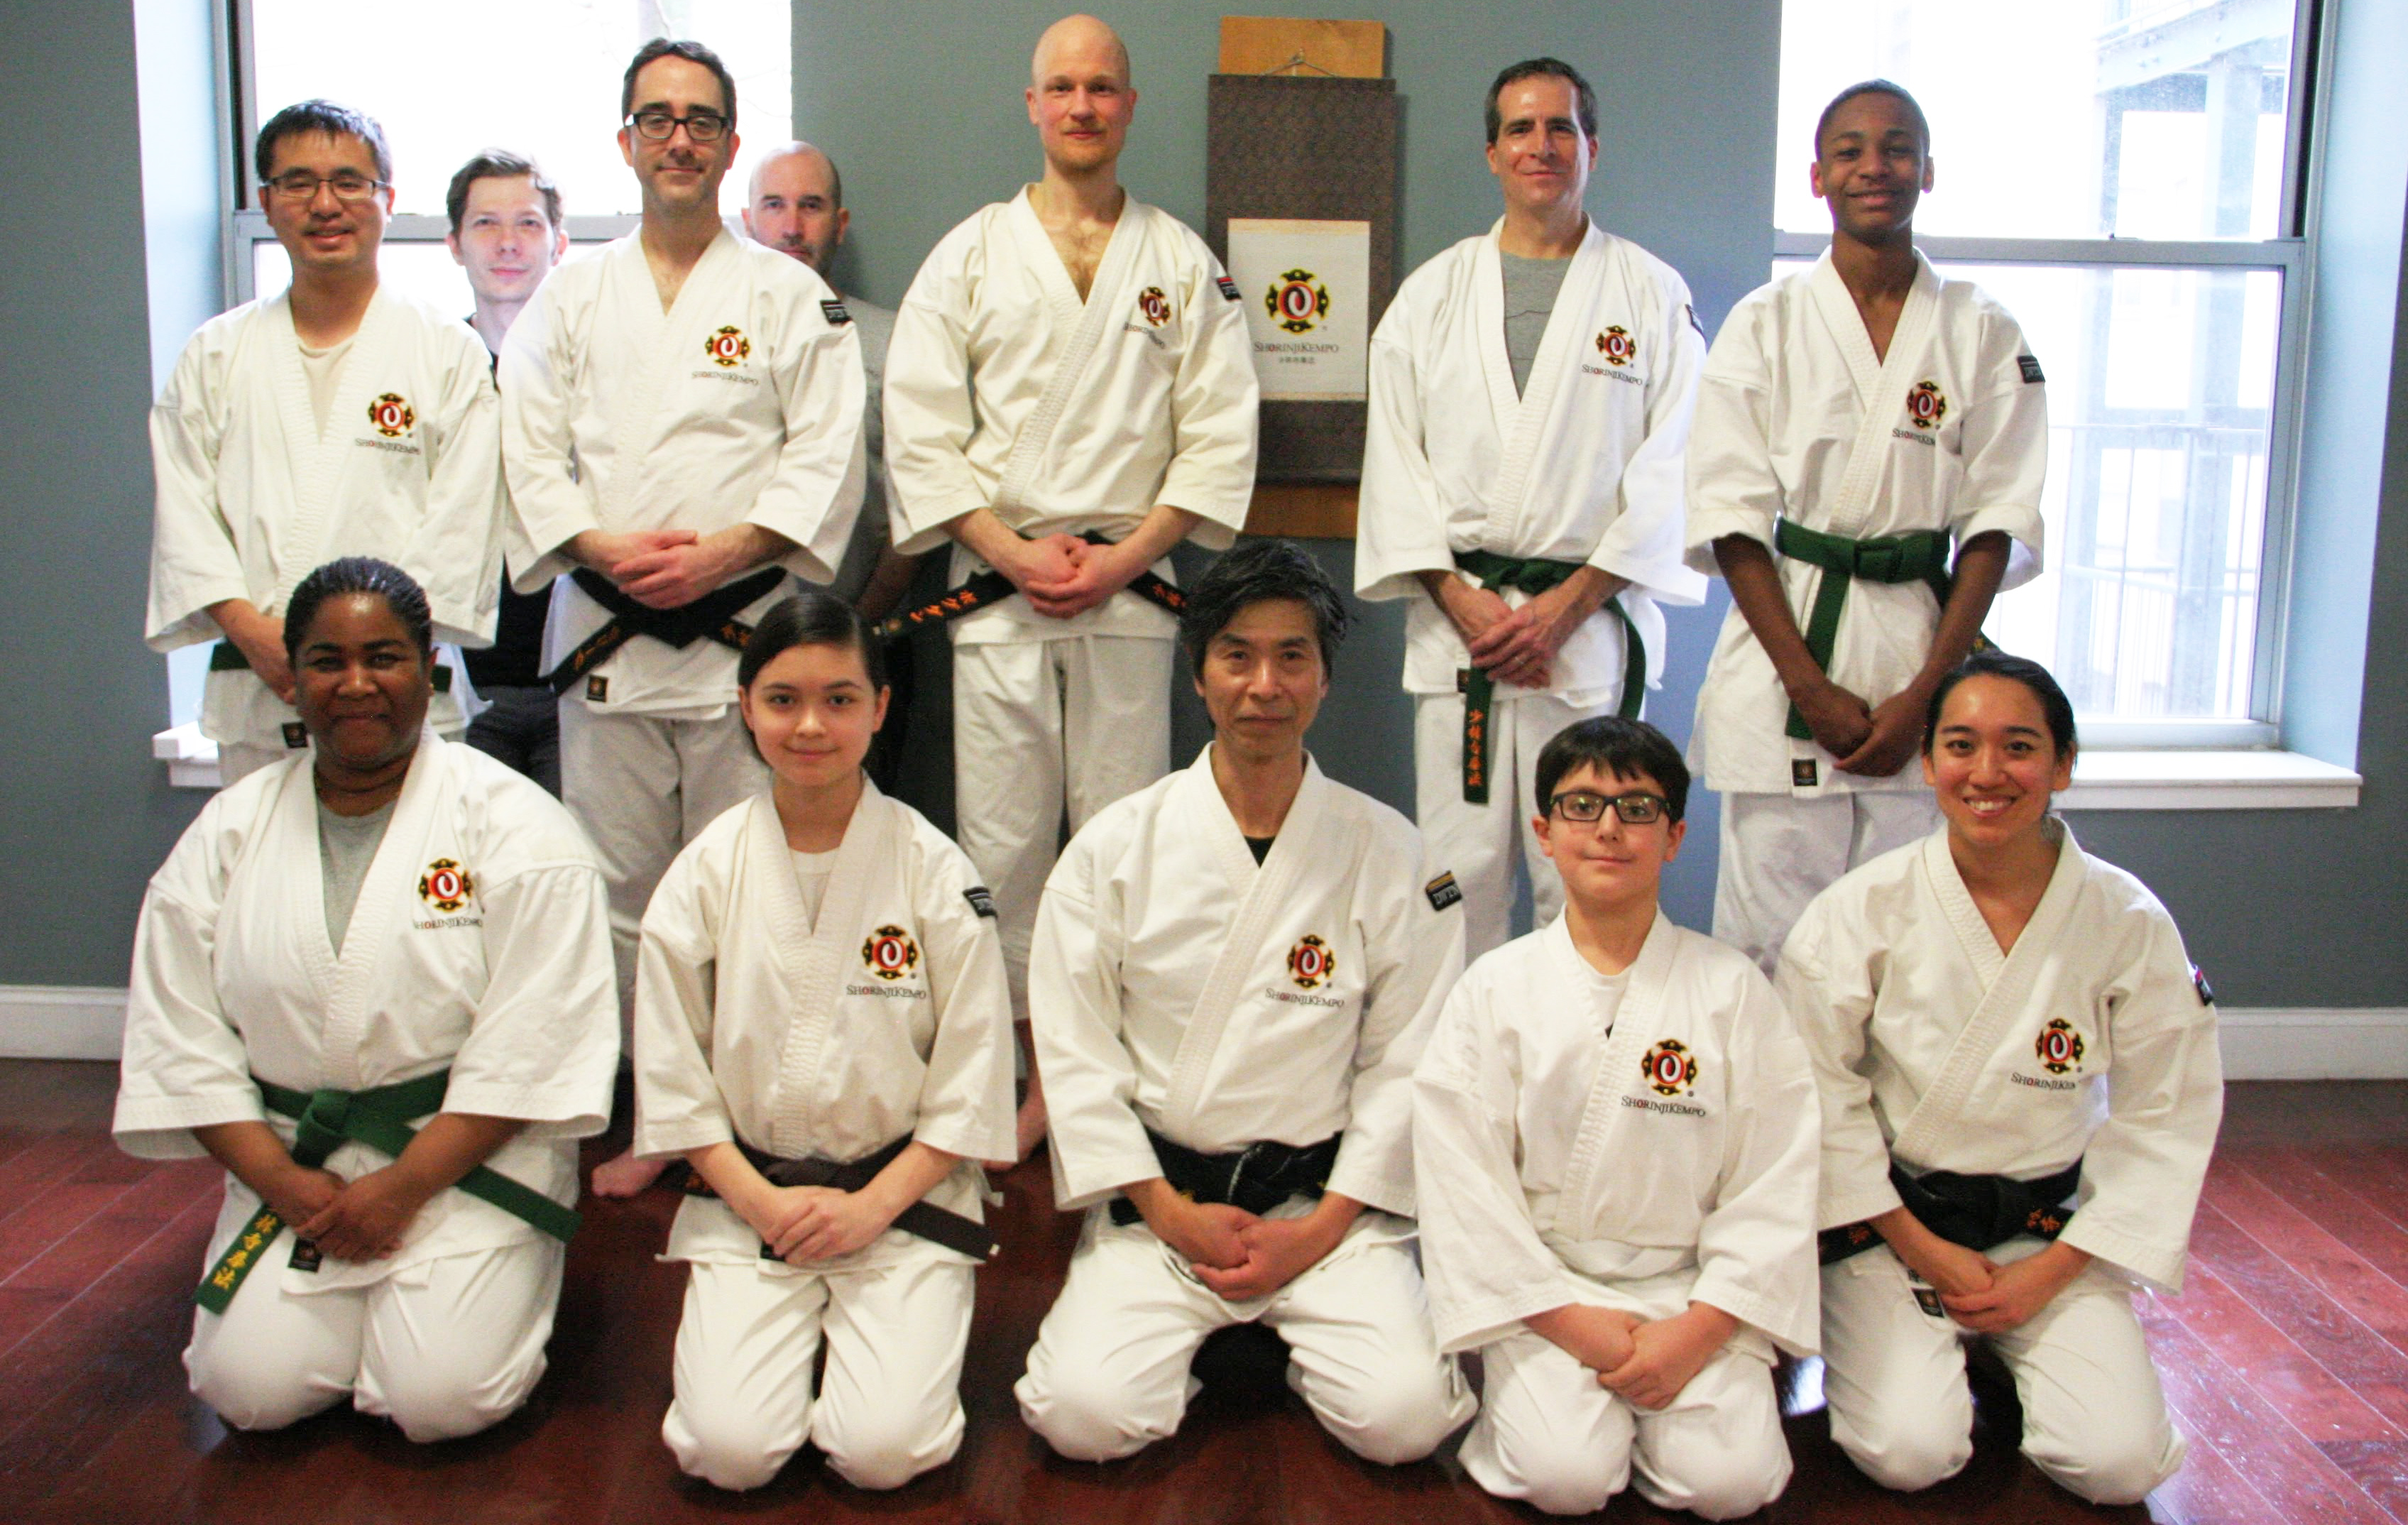 Shorinji Kempo NYC Branch